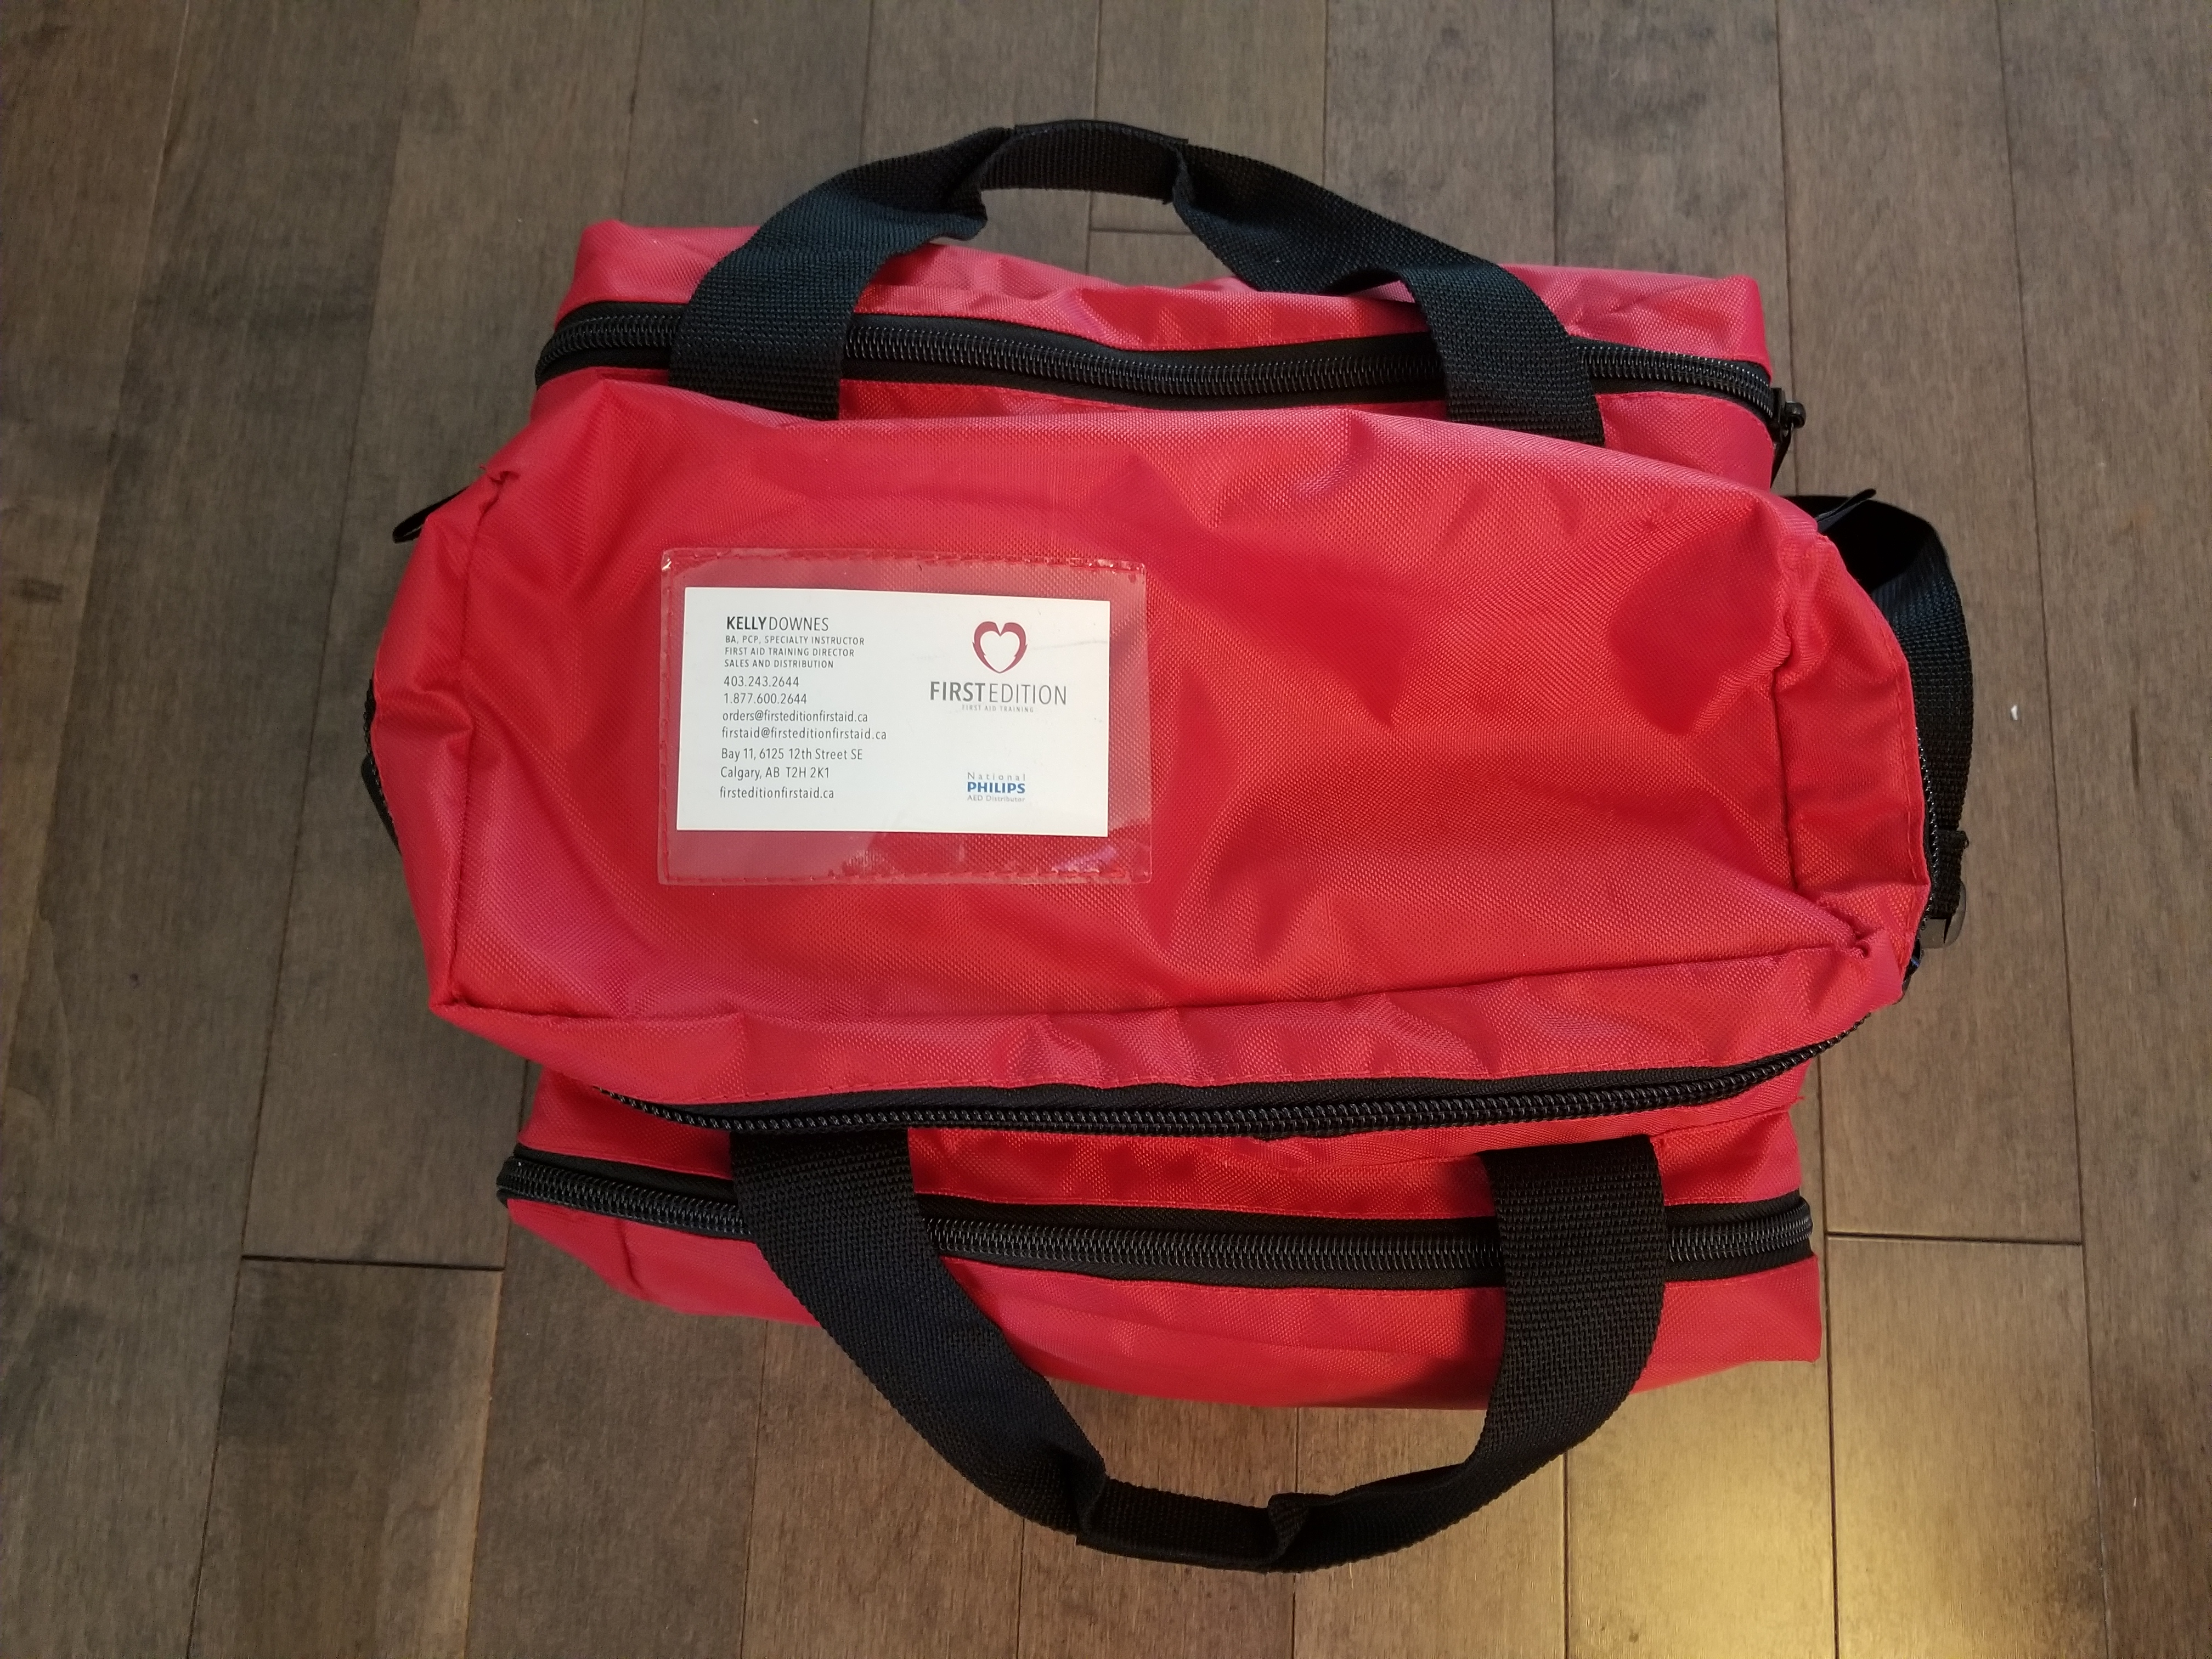 Large first aid kit with business card